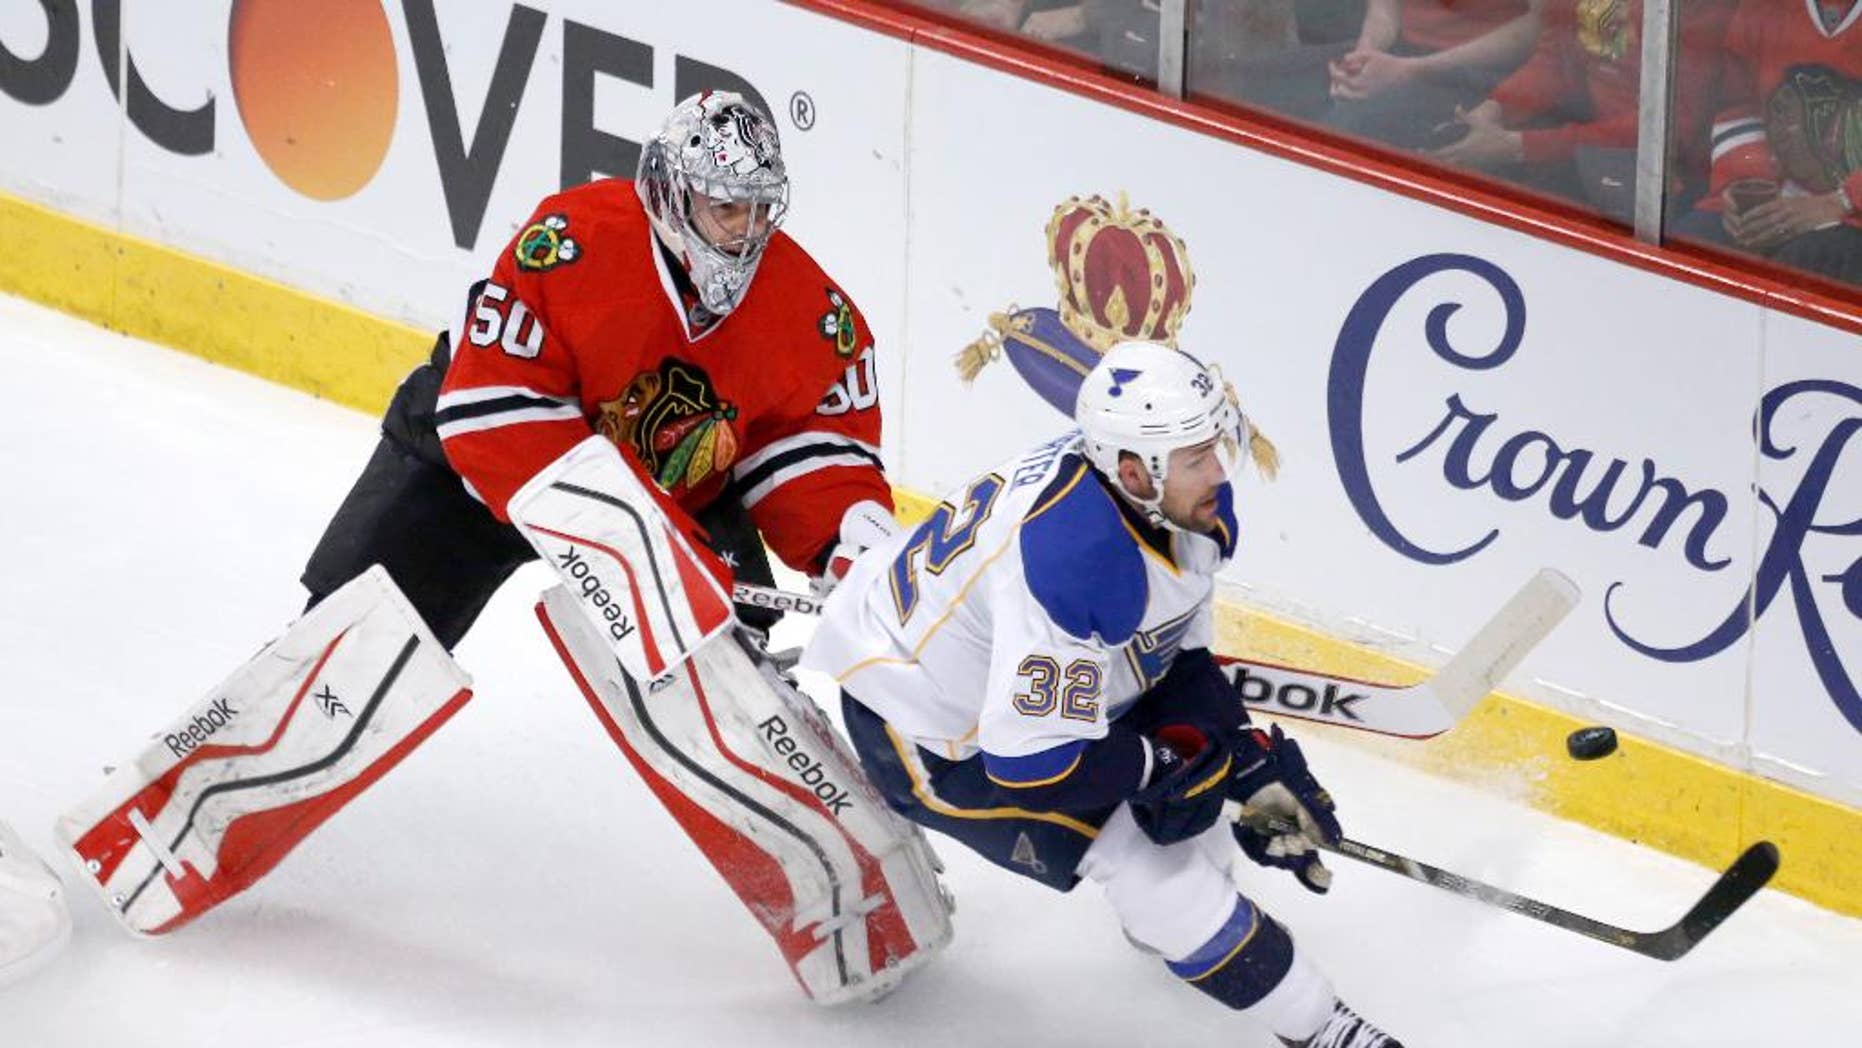 Chicago Blackhawks goalie Corey Crawford (50) clears the puck away from St. Louis Blues left wing Chris Porter during the first period in Game 3 of a first-round NHL hockey Stanley Cup playoff series game Monday, April 21, 2014, in Chicago. (AP Photo/Charles Rex Arbogast)